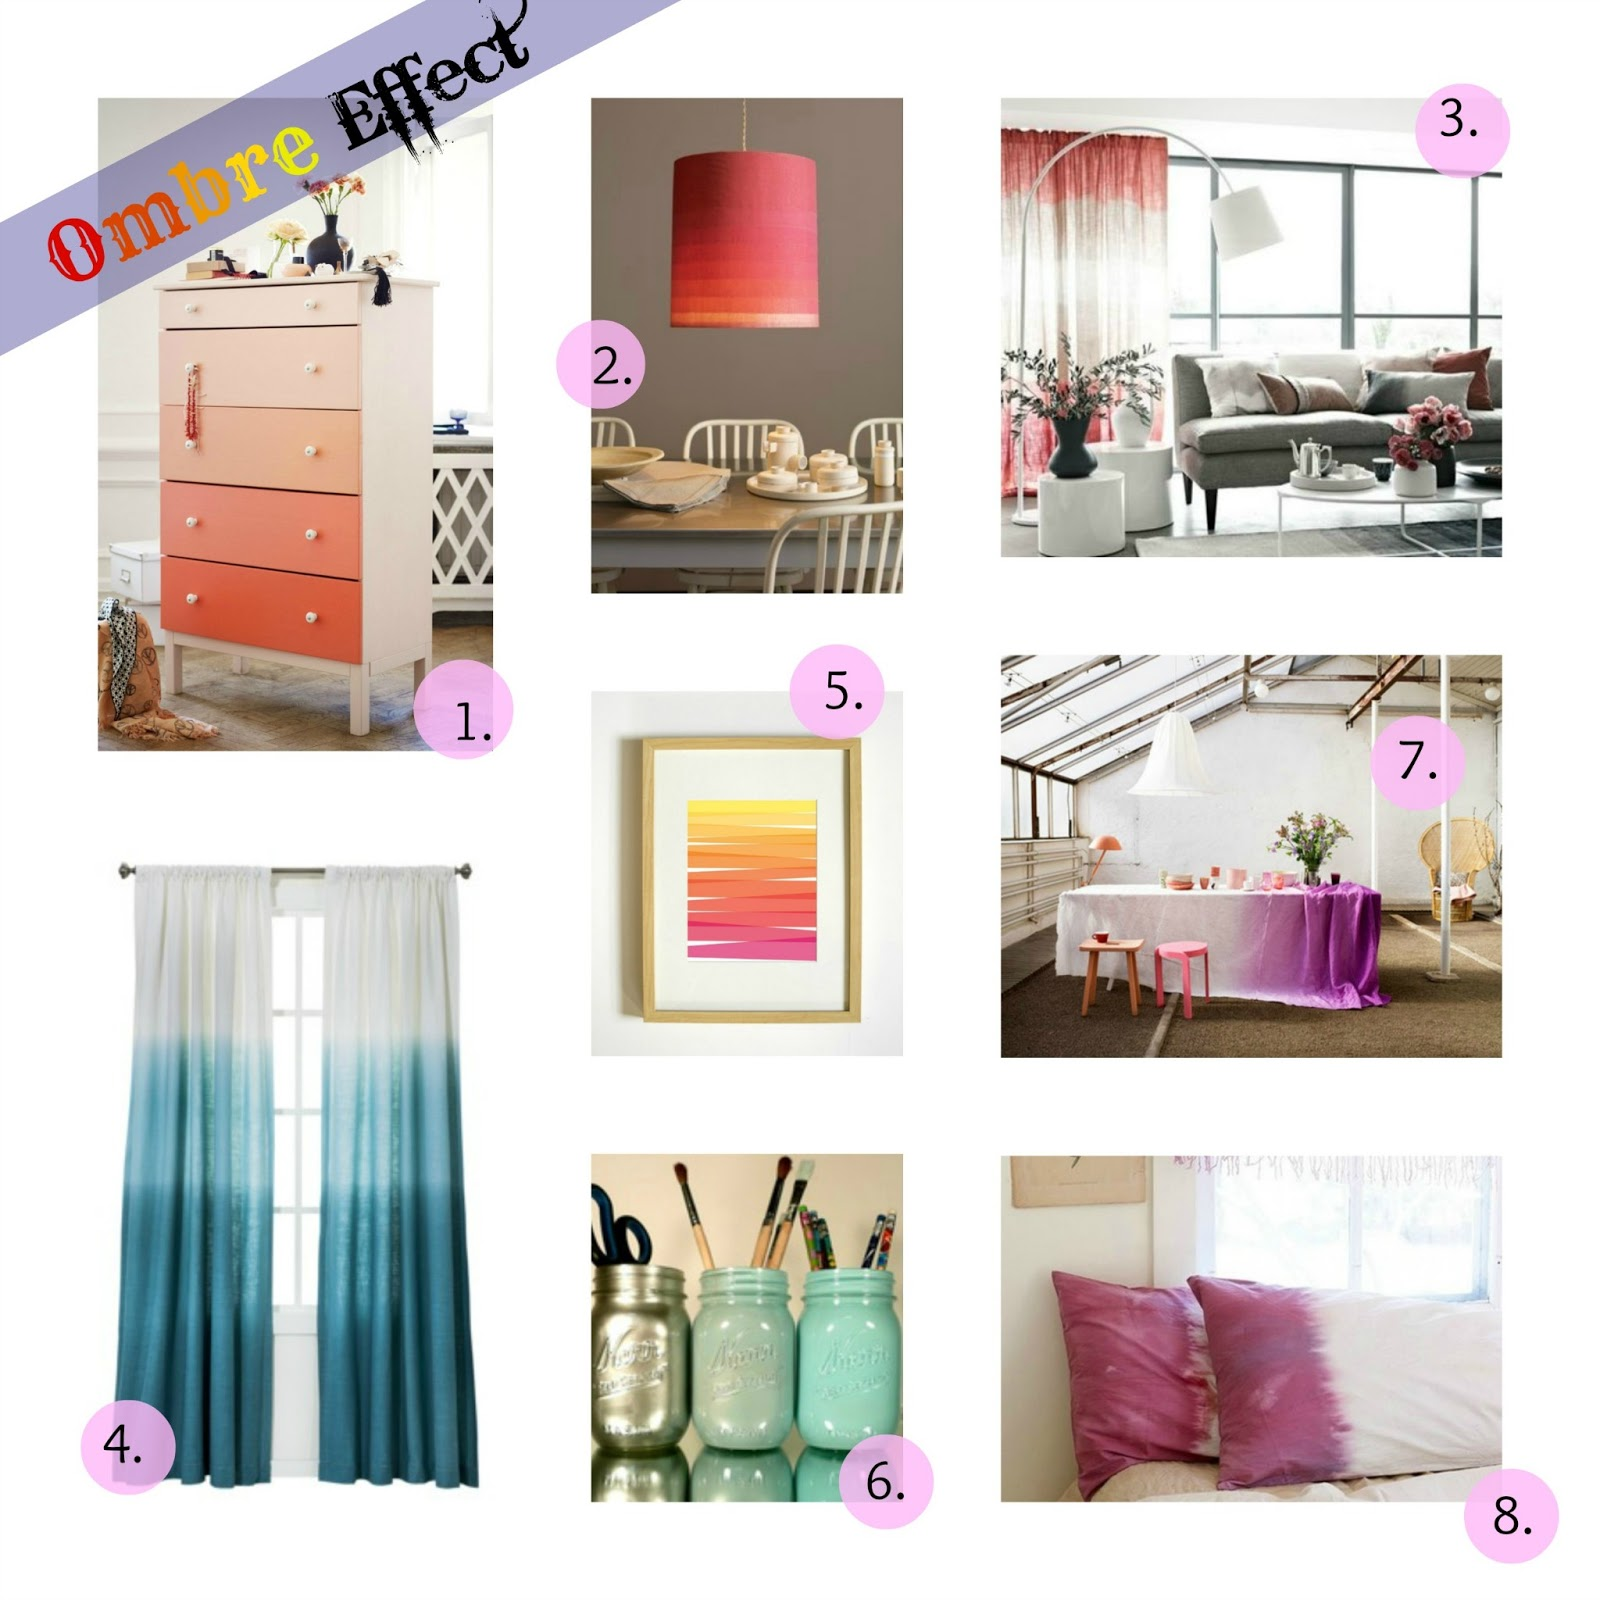 Green Ombre Walls With Orange Sunset Accent Wall: The Bougie Life: Design Trend- OMBRE WALLS